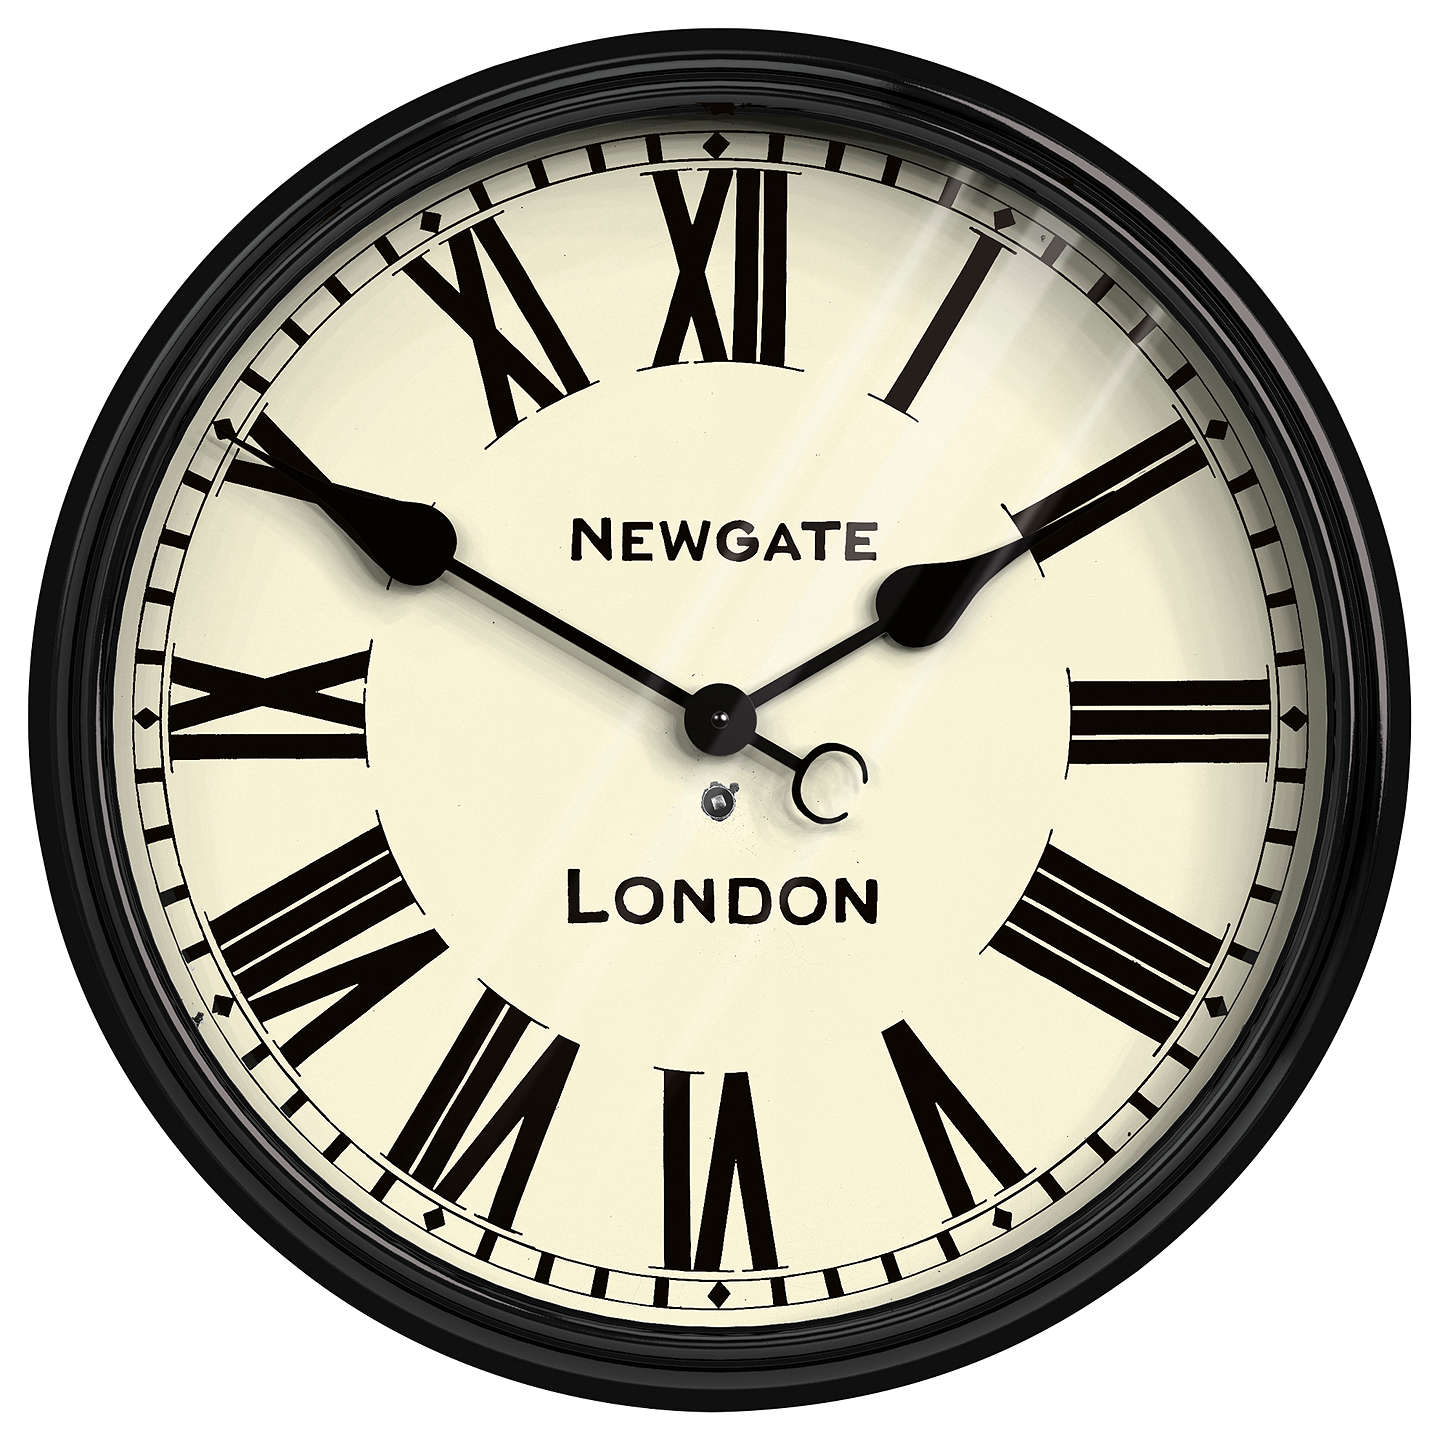 Newgate battersby wall clock dia50cm black at john lewis for Newgate battersby wall clock